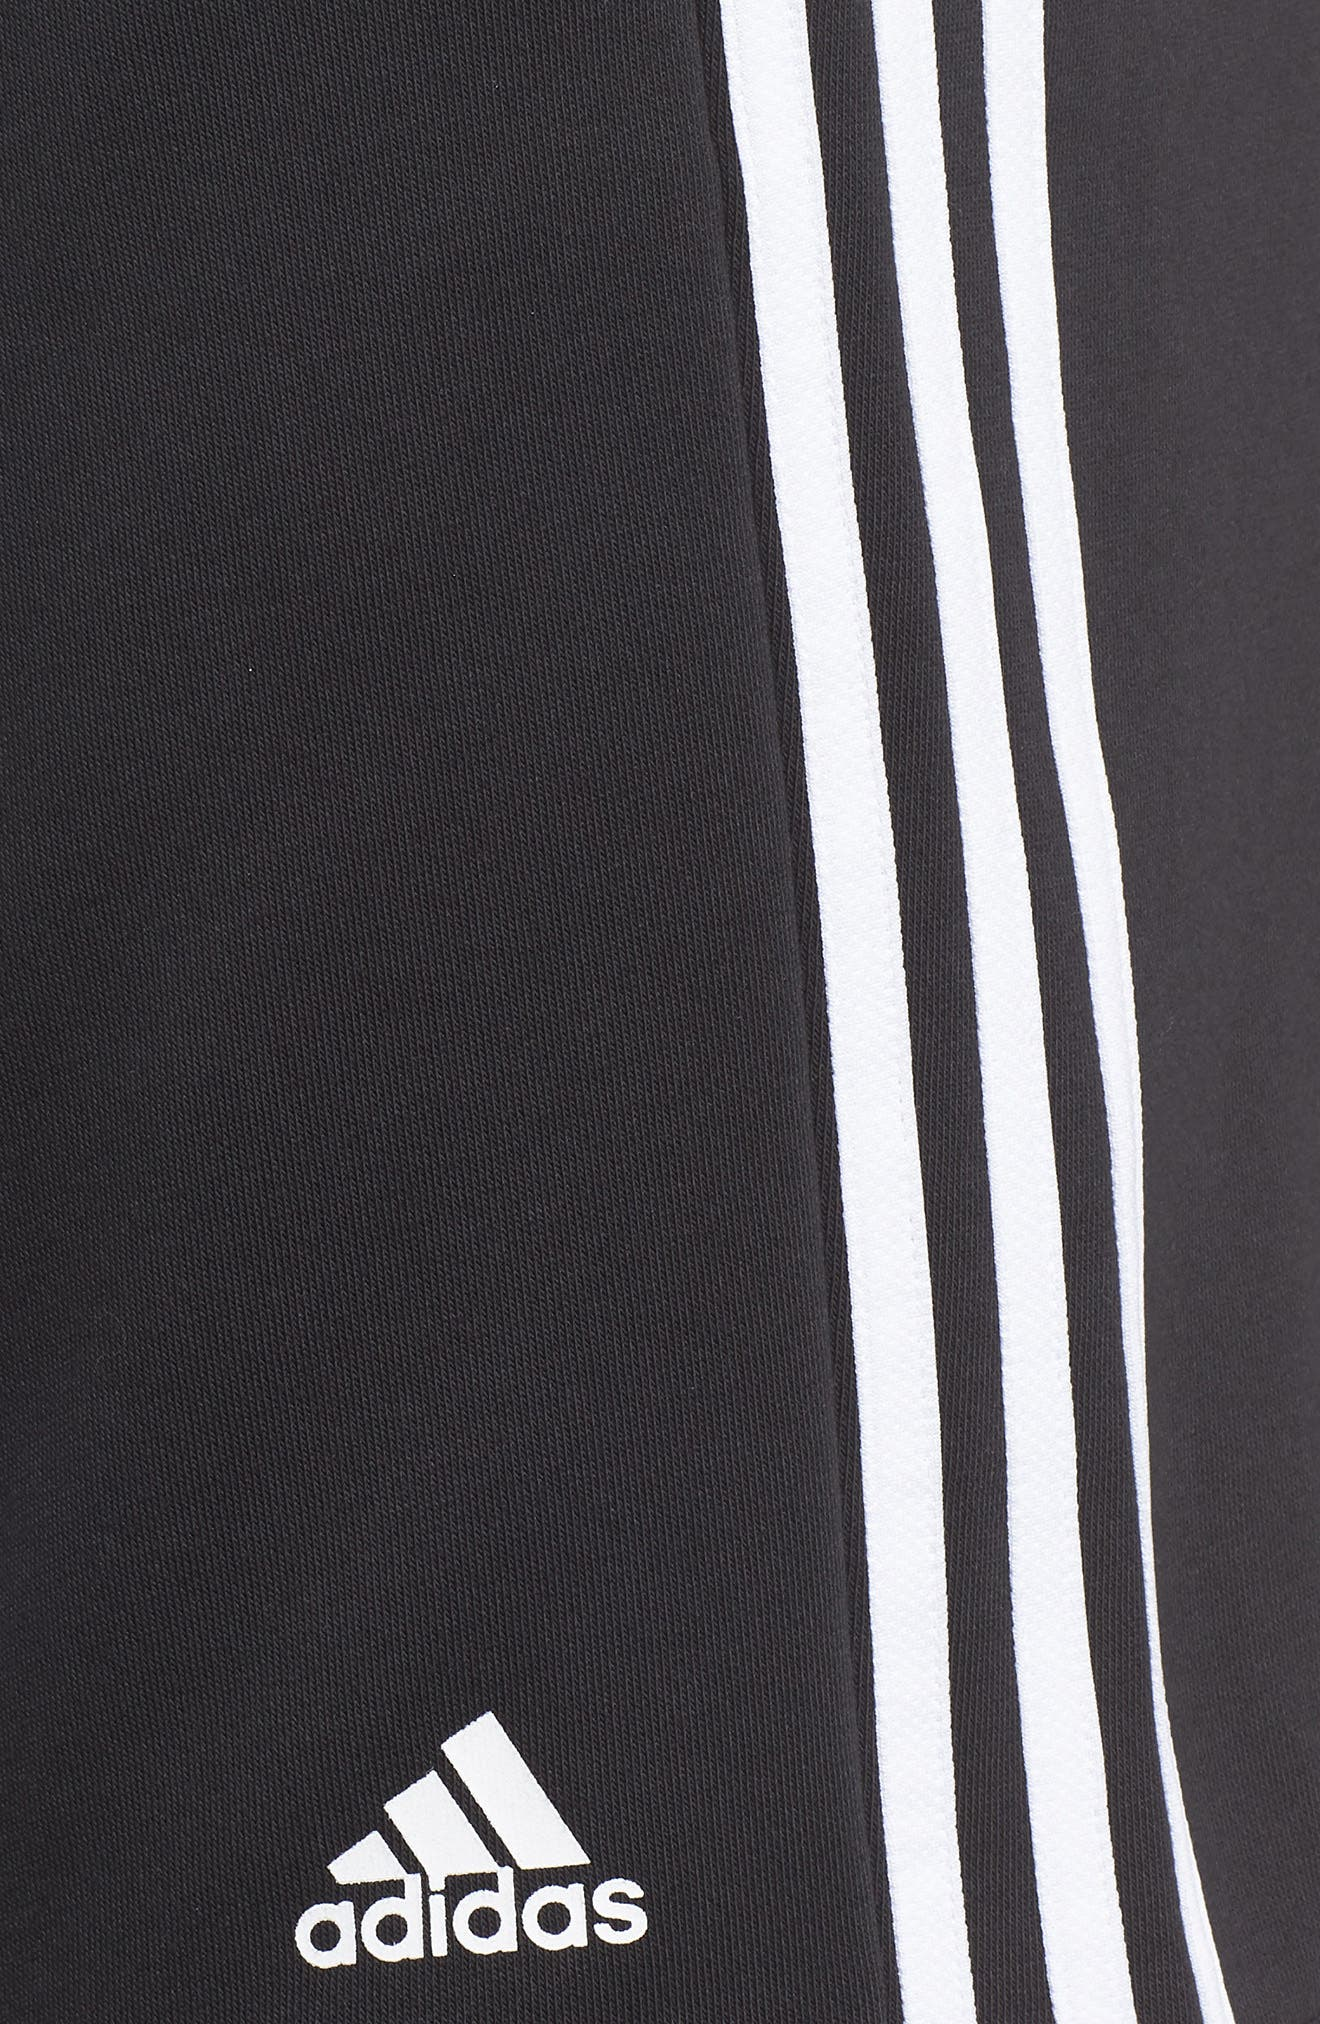 ADIDAS,                             Essentials French Terry Shorts,                             Alternate thumbnail 4, color,                             BLACK/ WHITE